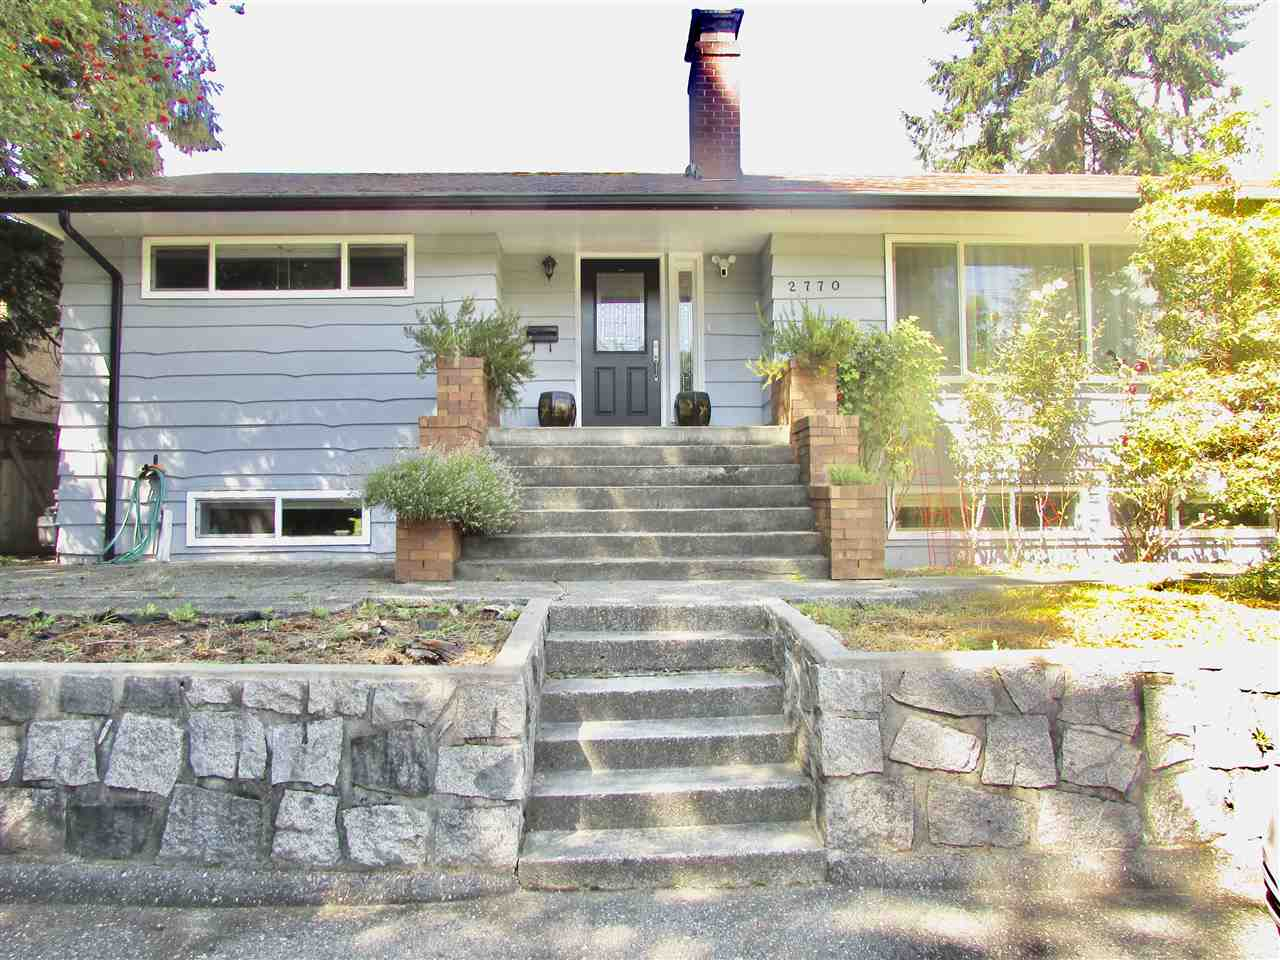 2770 MT SEYMOUR PARKWAY - Blueridge NV House/Single Family for sale, 4 Bedrooms (R2484574) - #1